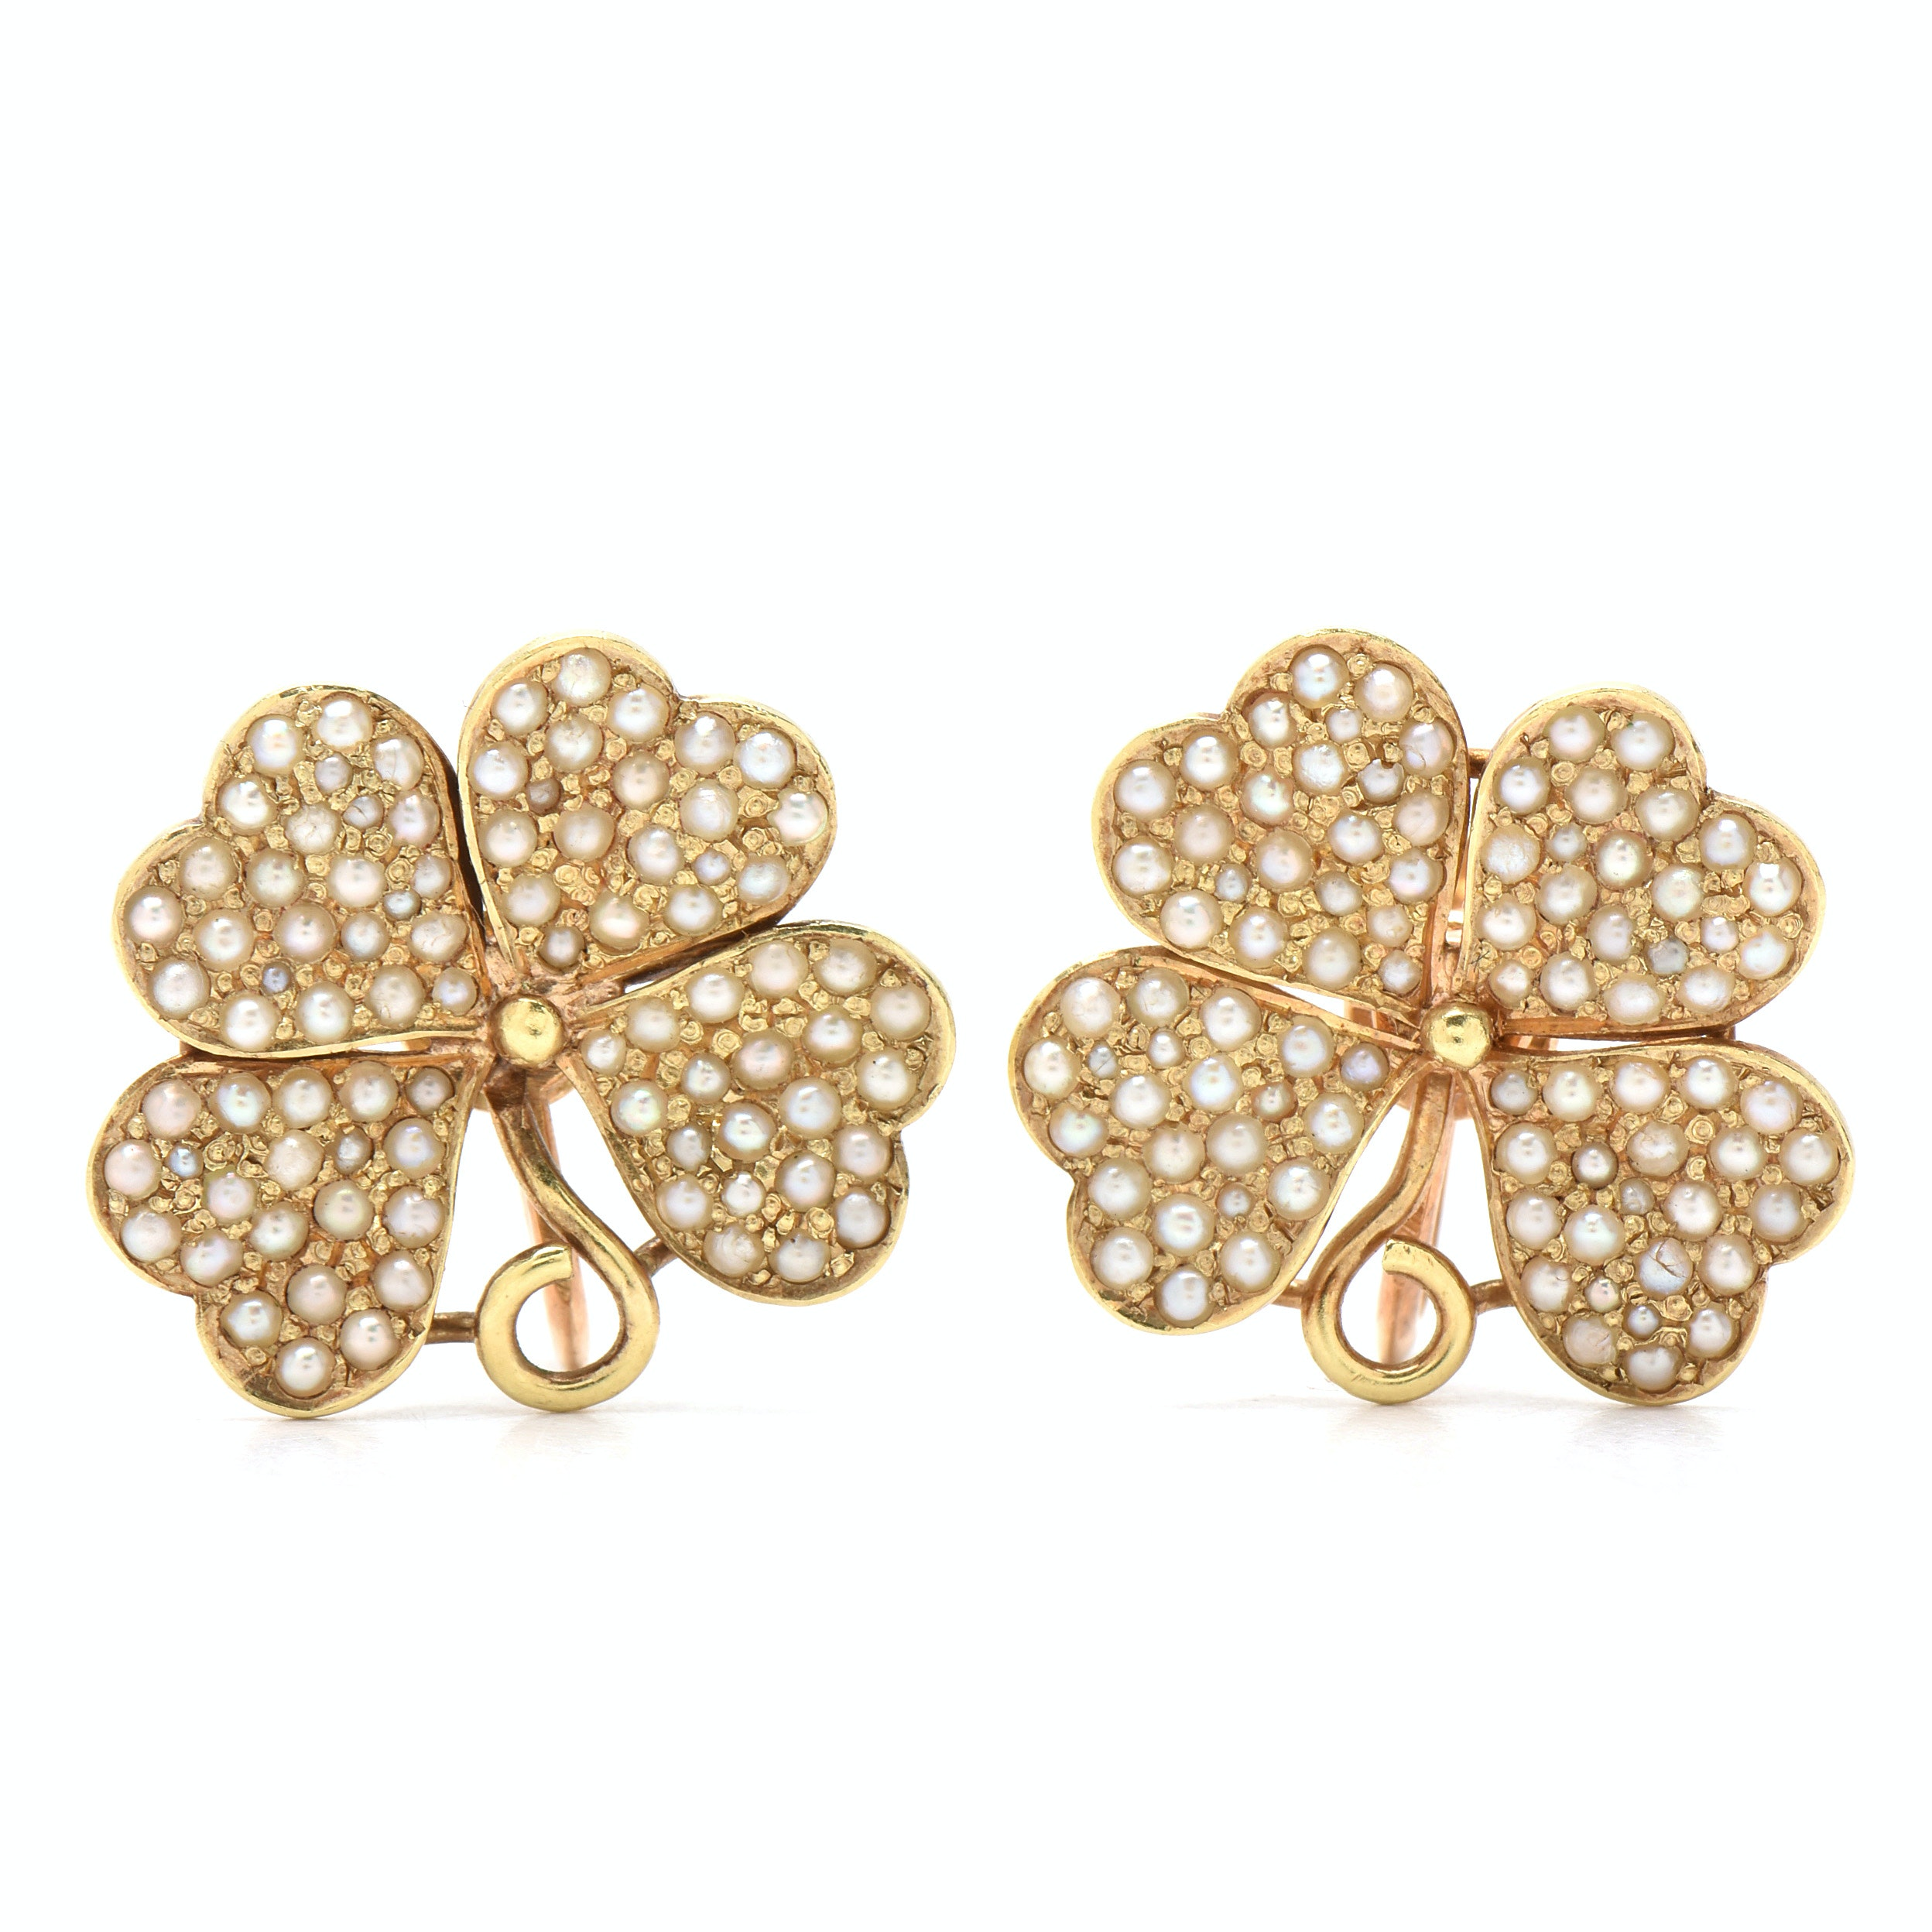 Edwardian Sloan & Co 14K Yellow Gold Seed Pearl Four-Leaf Clover Earring